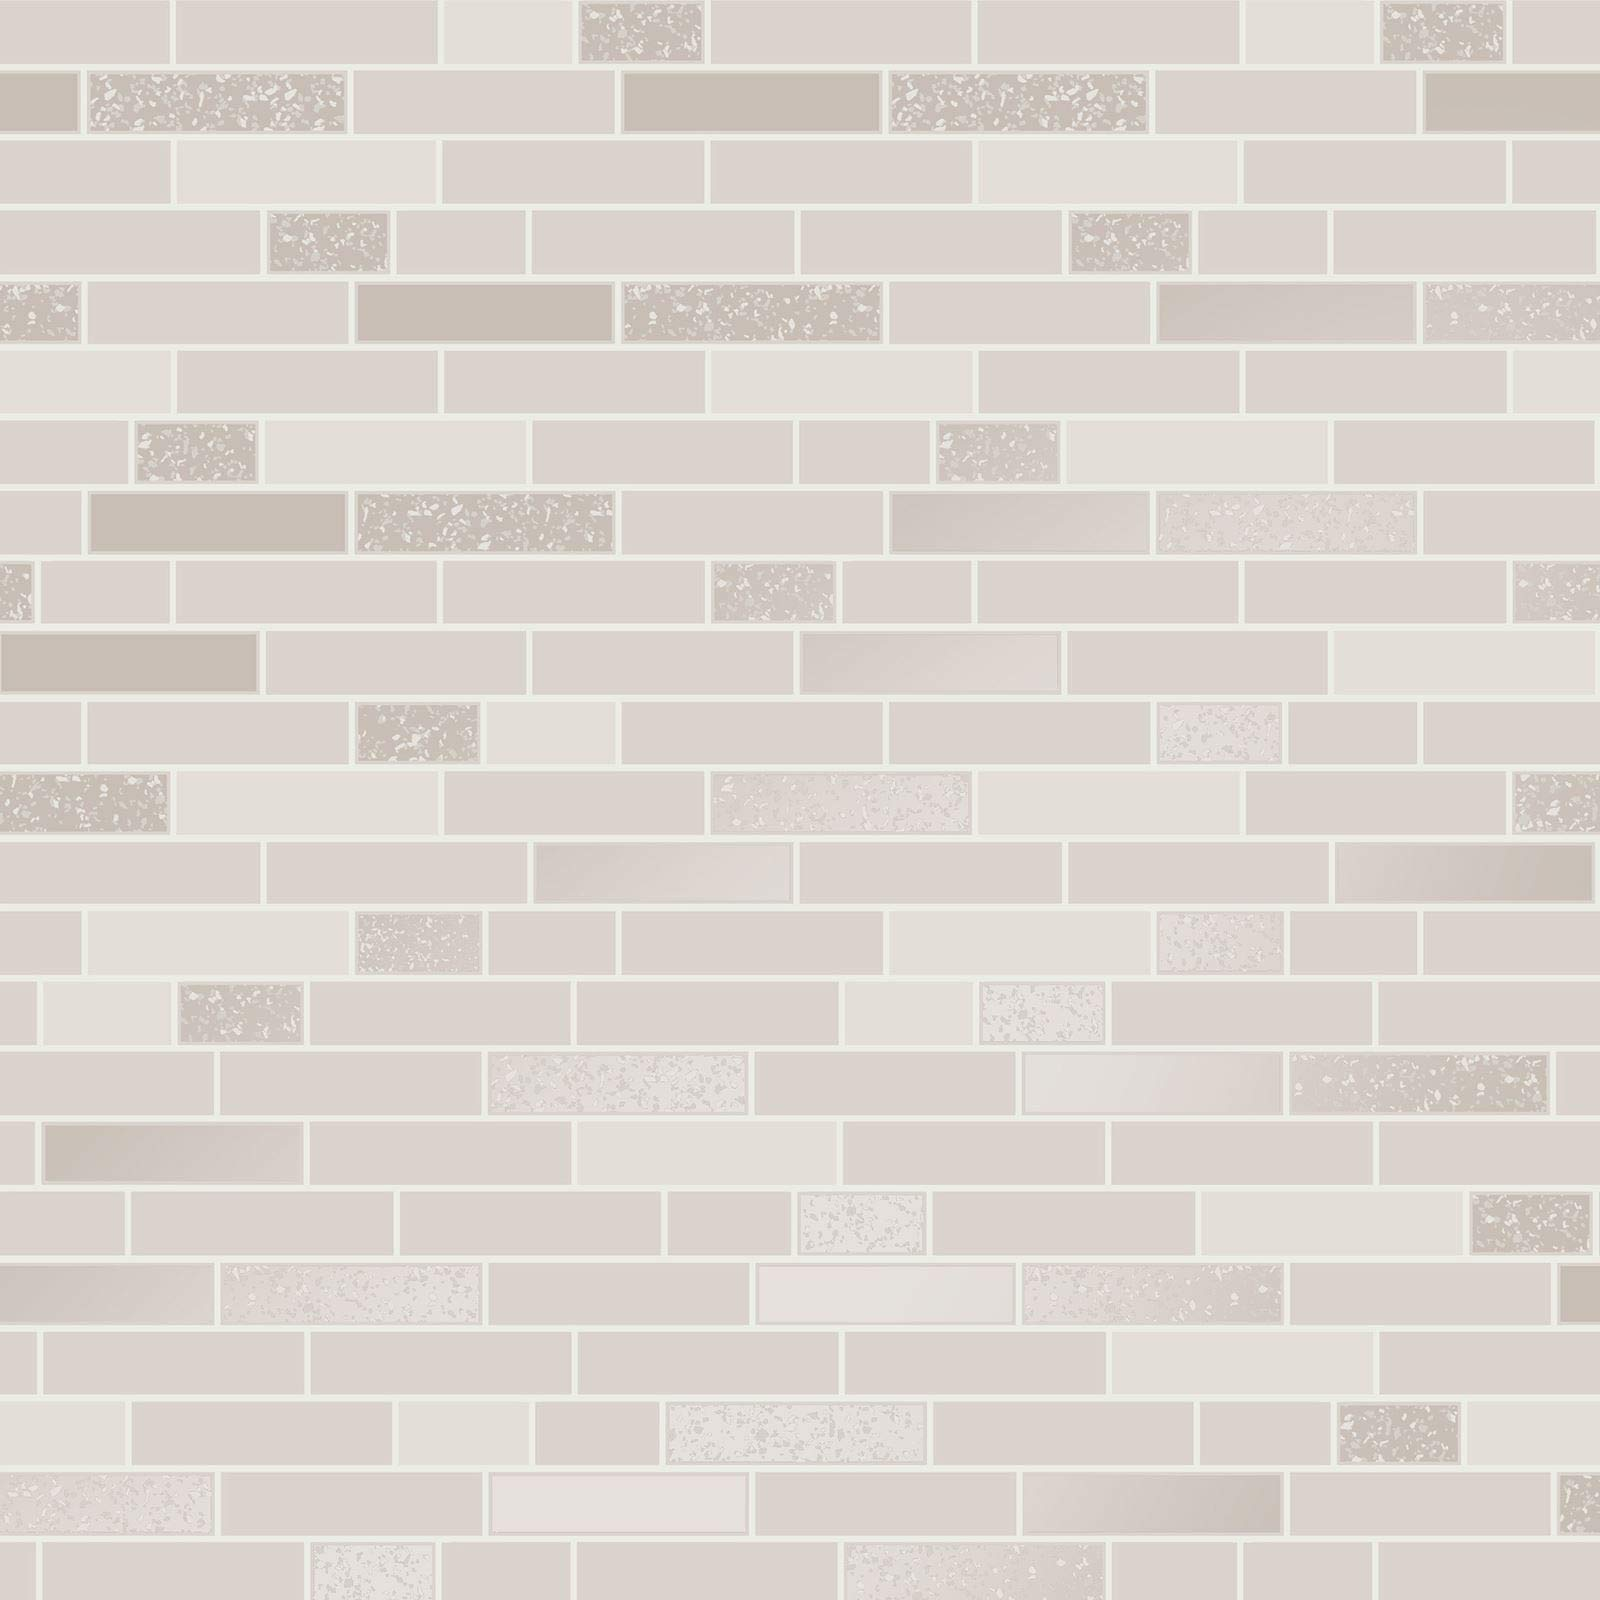 Tile Effect Wallpaper Glitter Brick Oblong Granite Stone Kitchen Bathroom Holden  sc 1 st  Amazon UK & Tile Wallpaper for Kitchens: Amazon.co.uk